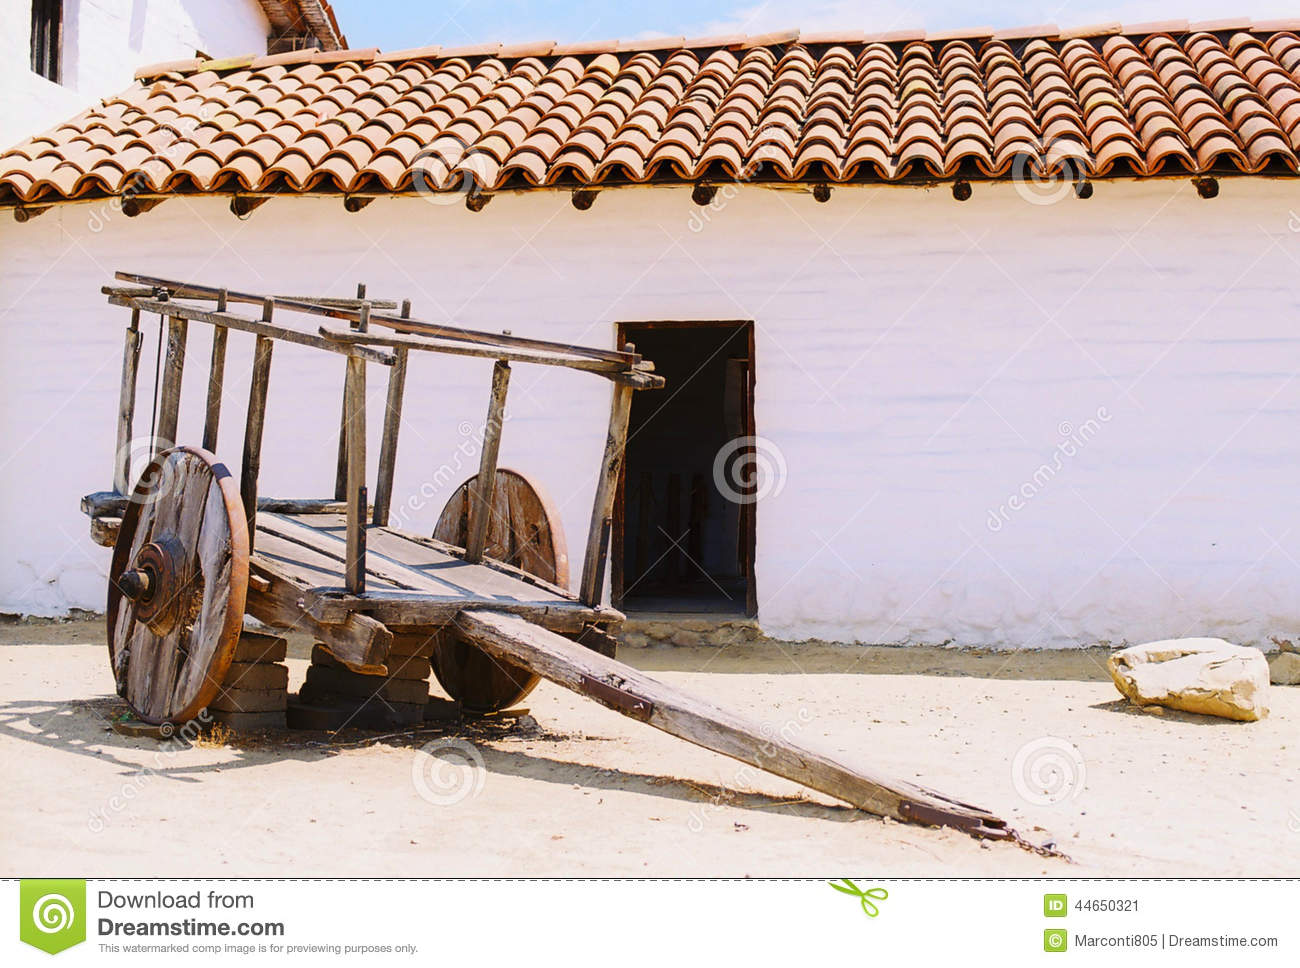 Tile Roof Adobe Building With Old Cart Film Book Cover